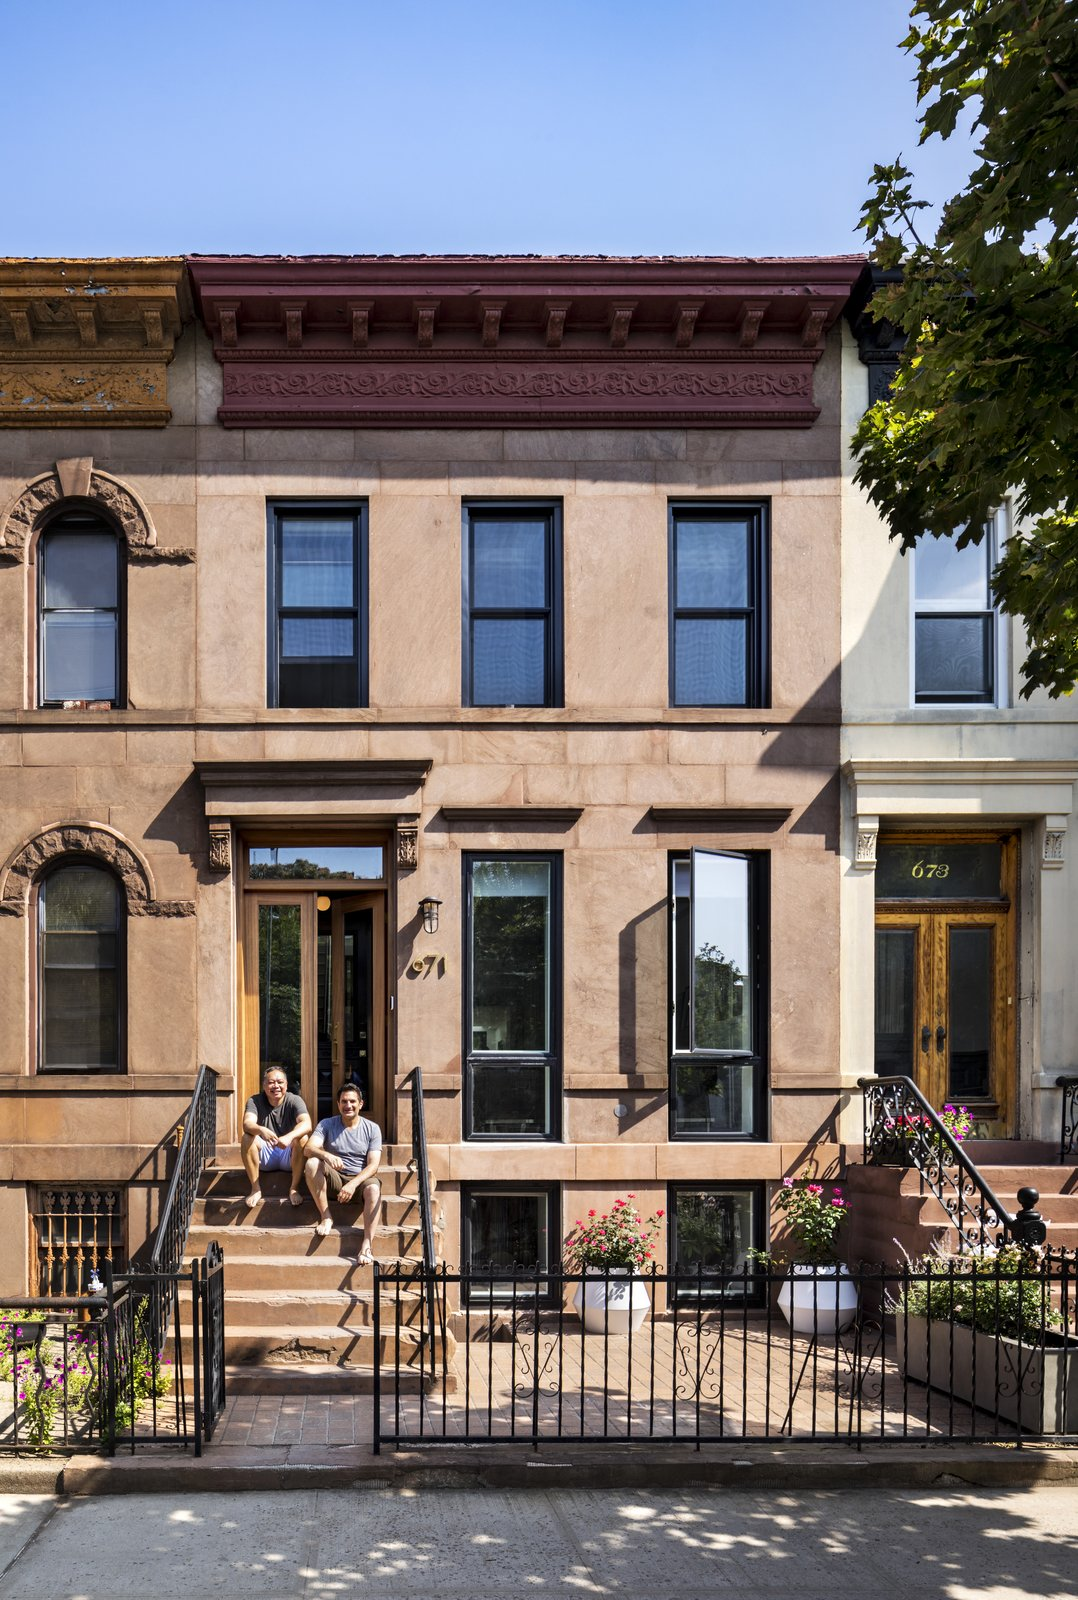 BFDO Architects Crown Heights Brownstone exterior